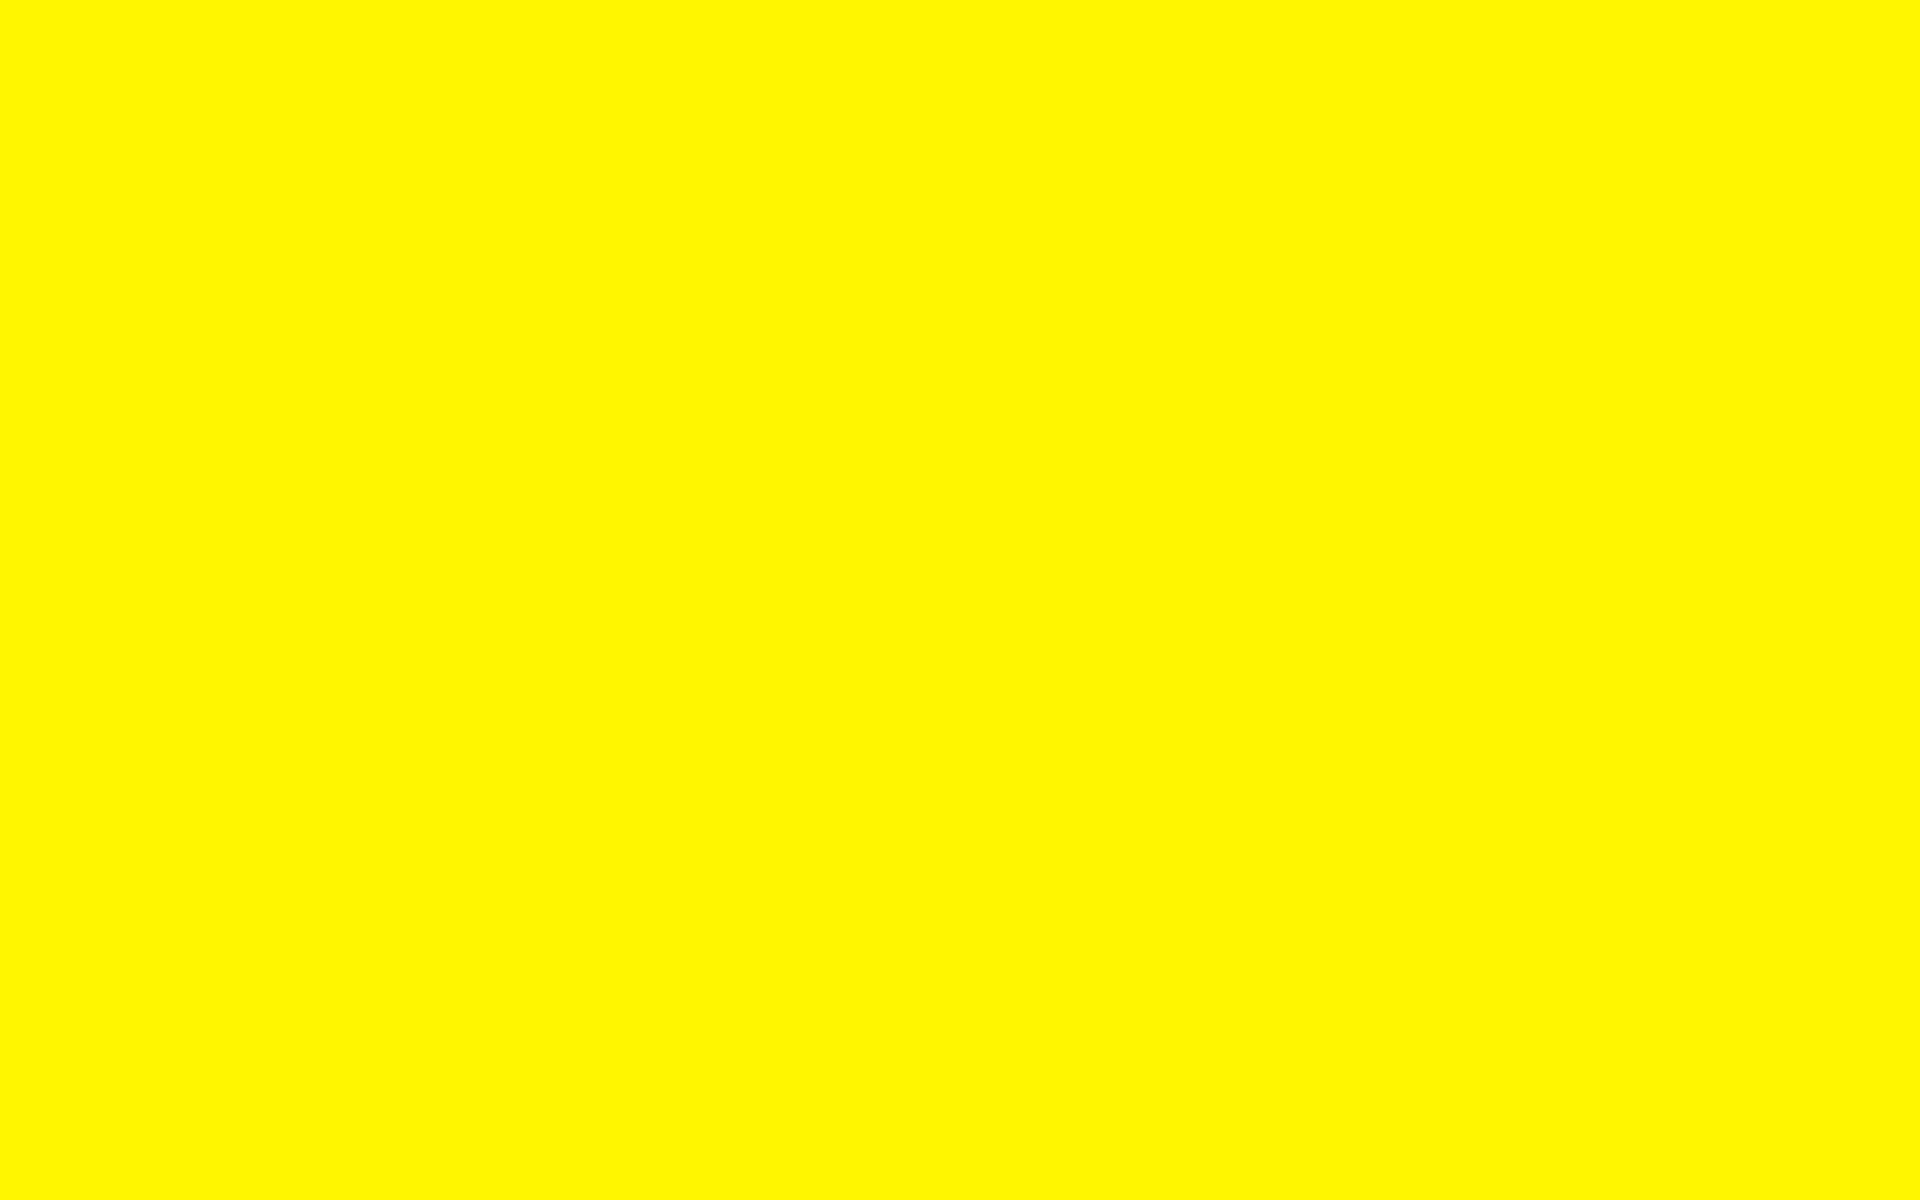 1920x1200 Cadmium Yellow Solid Color Background